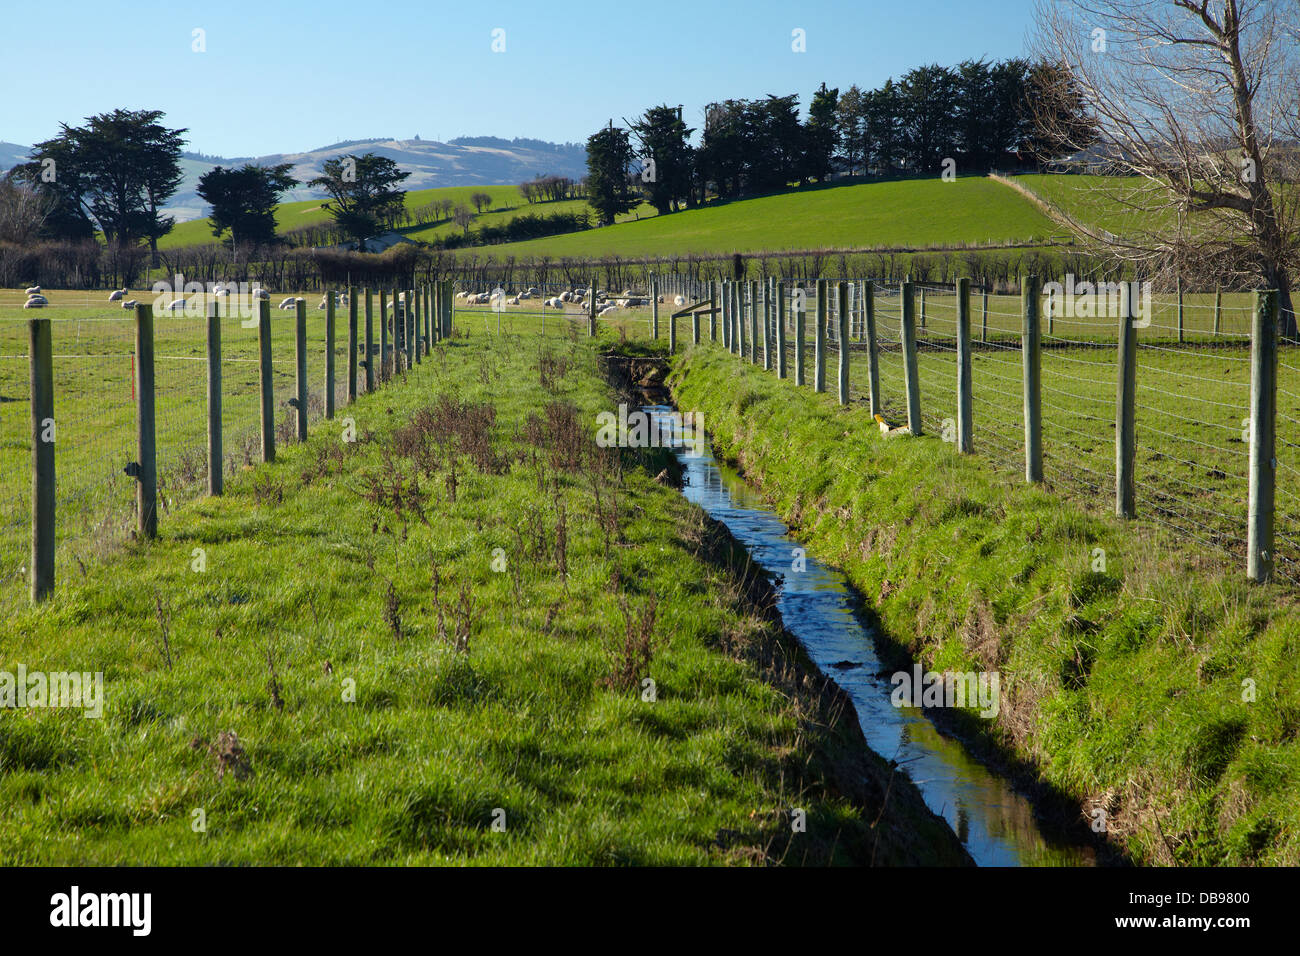 Drainage channel and fenced riparian strip, Taieri Plains, near Dunedin, South Island, New Zealand Stock Photo